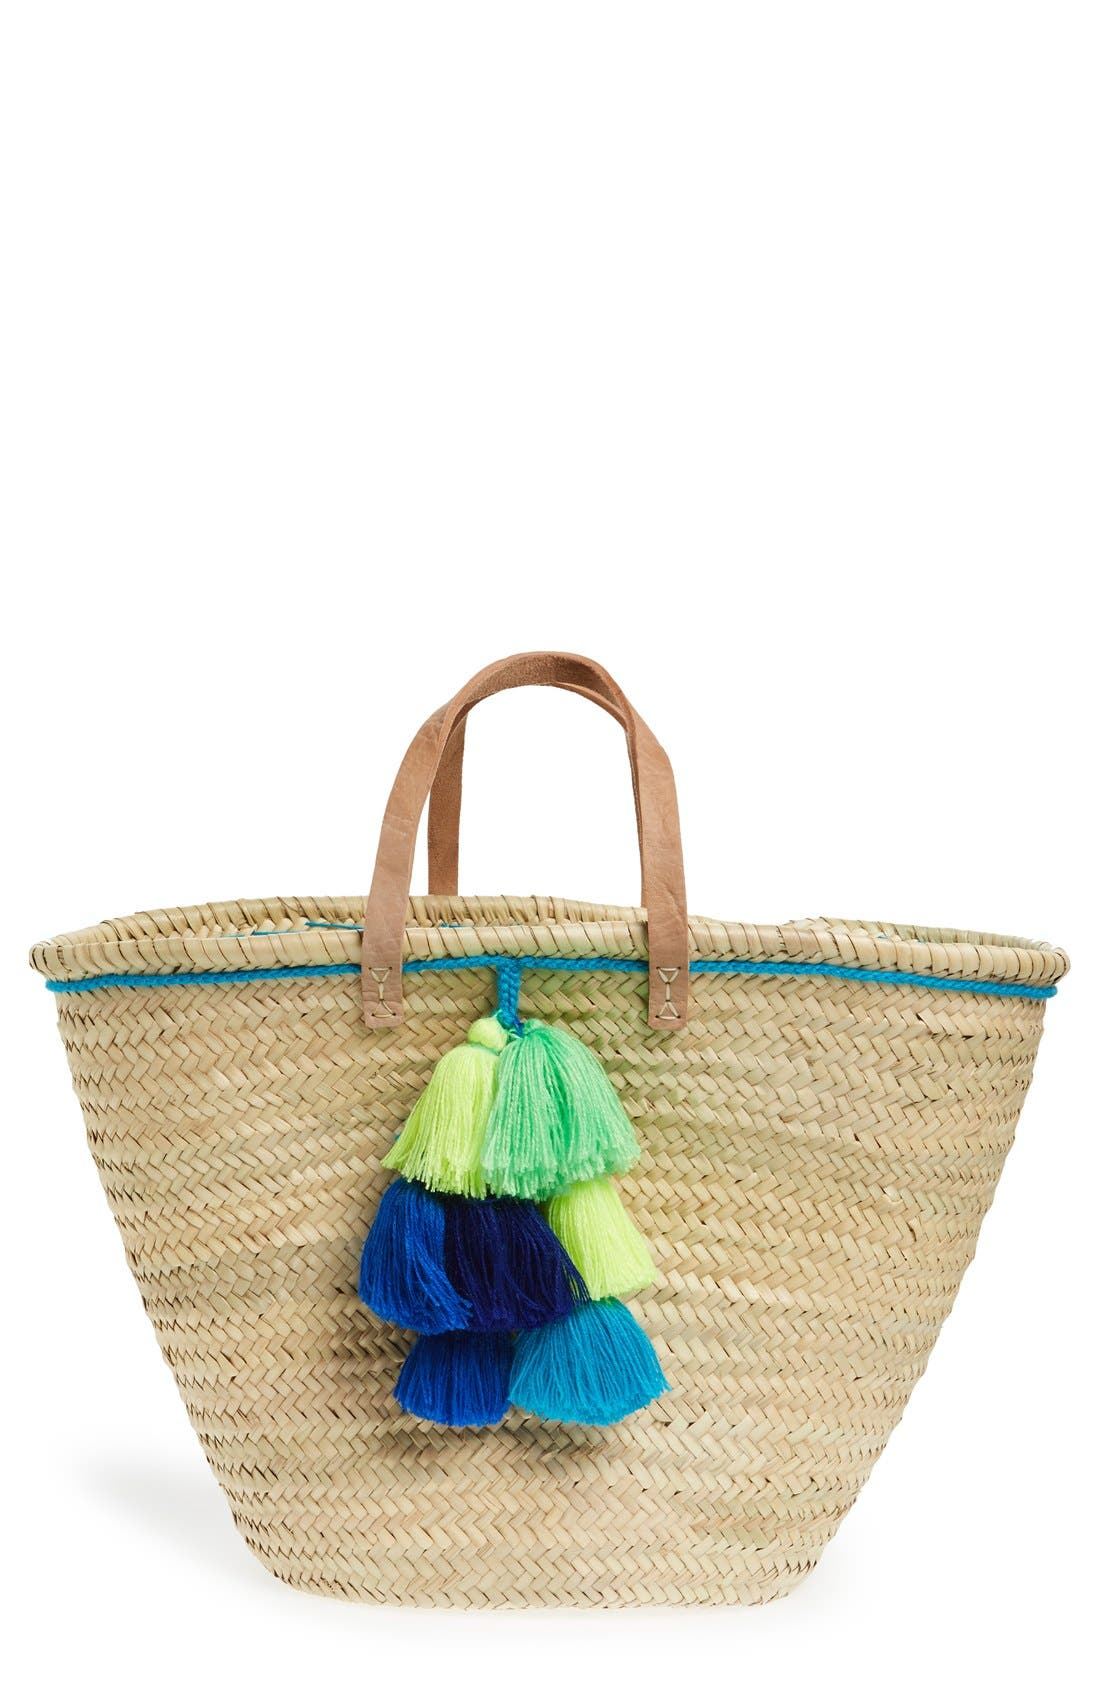 Alternate Image 1 Selected - House of Perna 'Remy' Woven Straw Tote